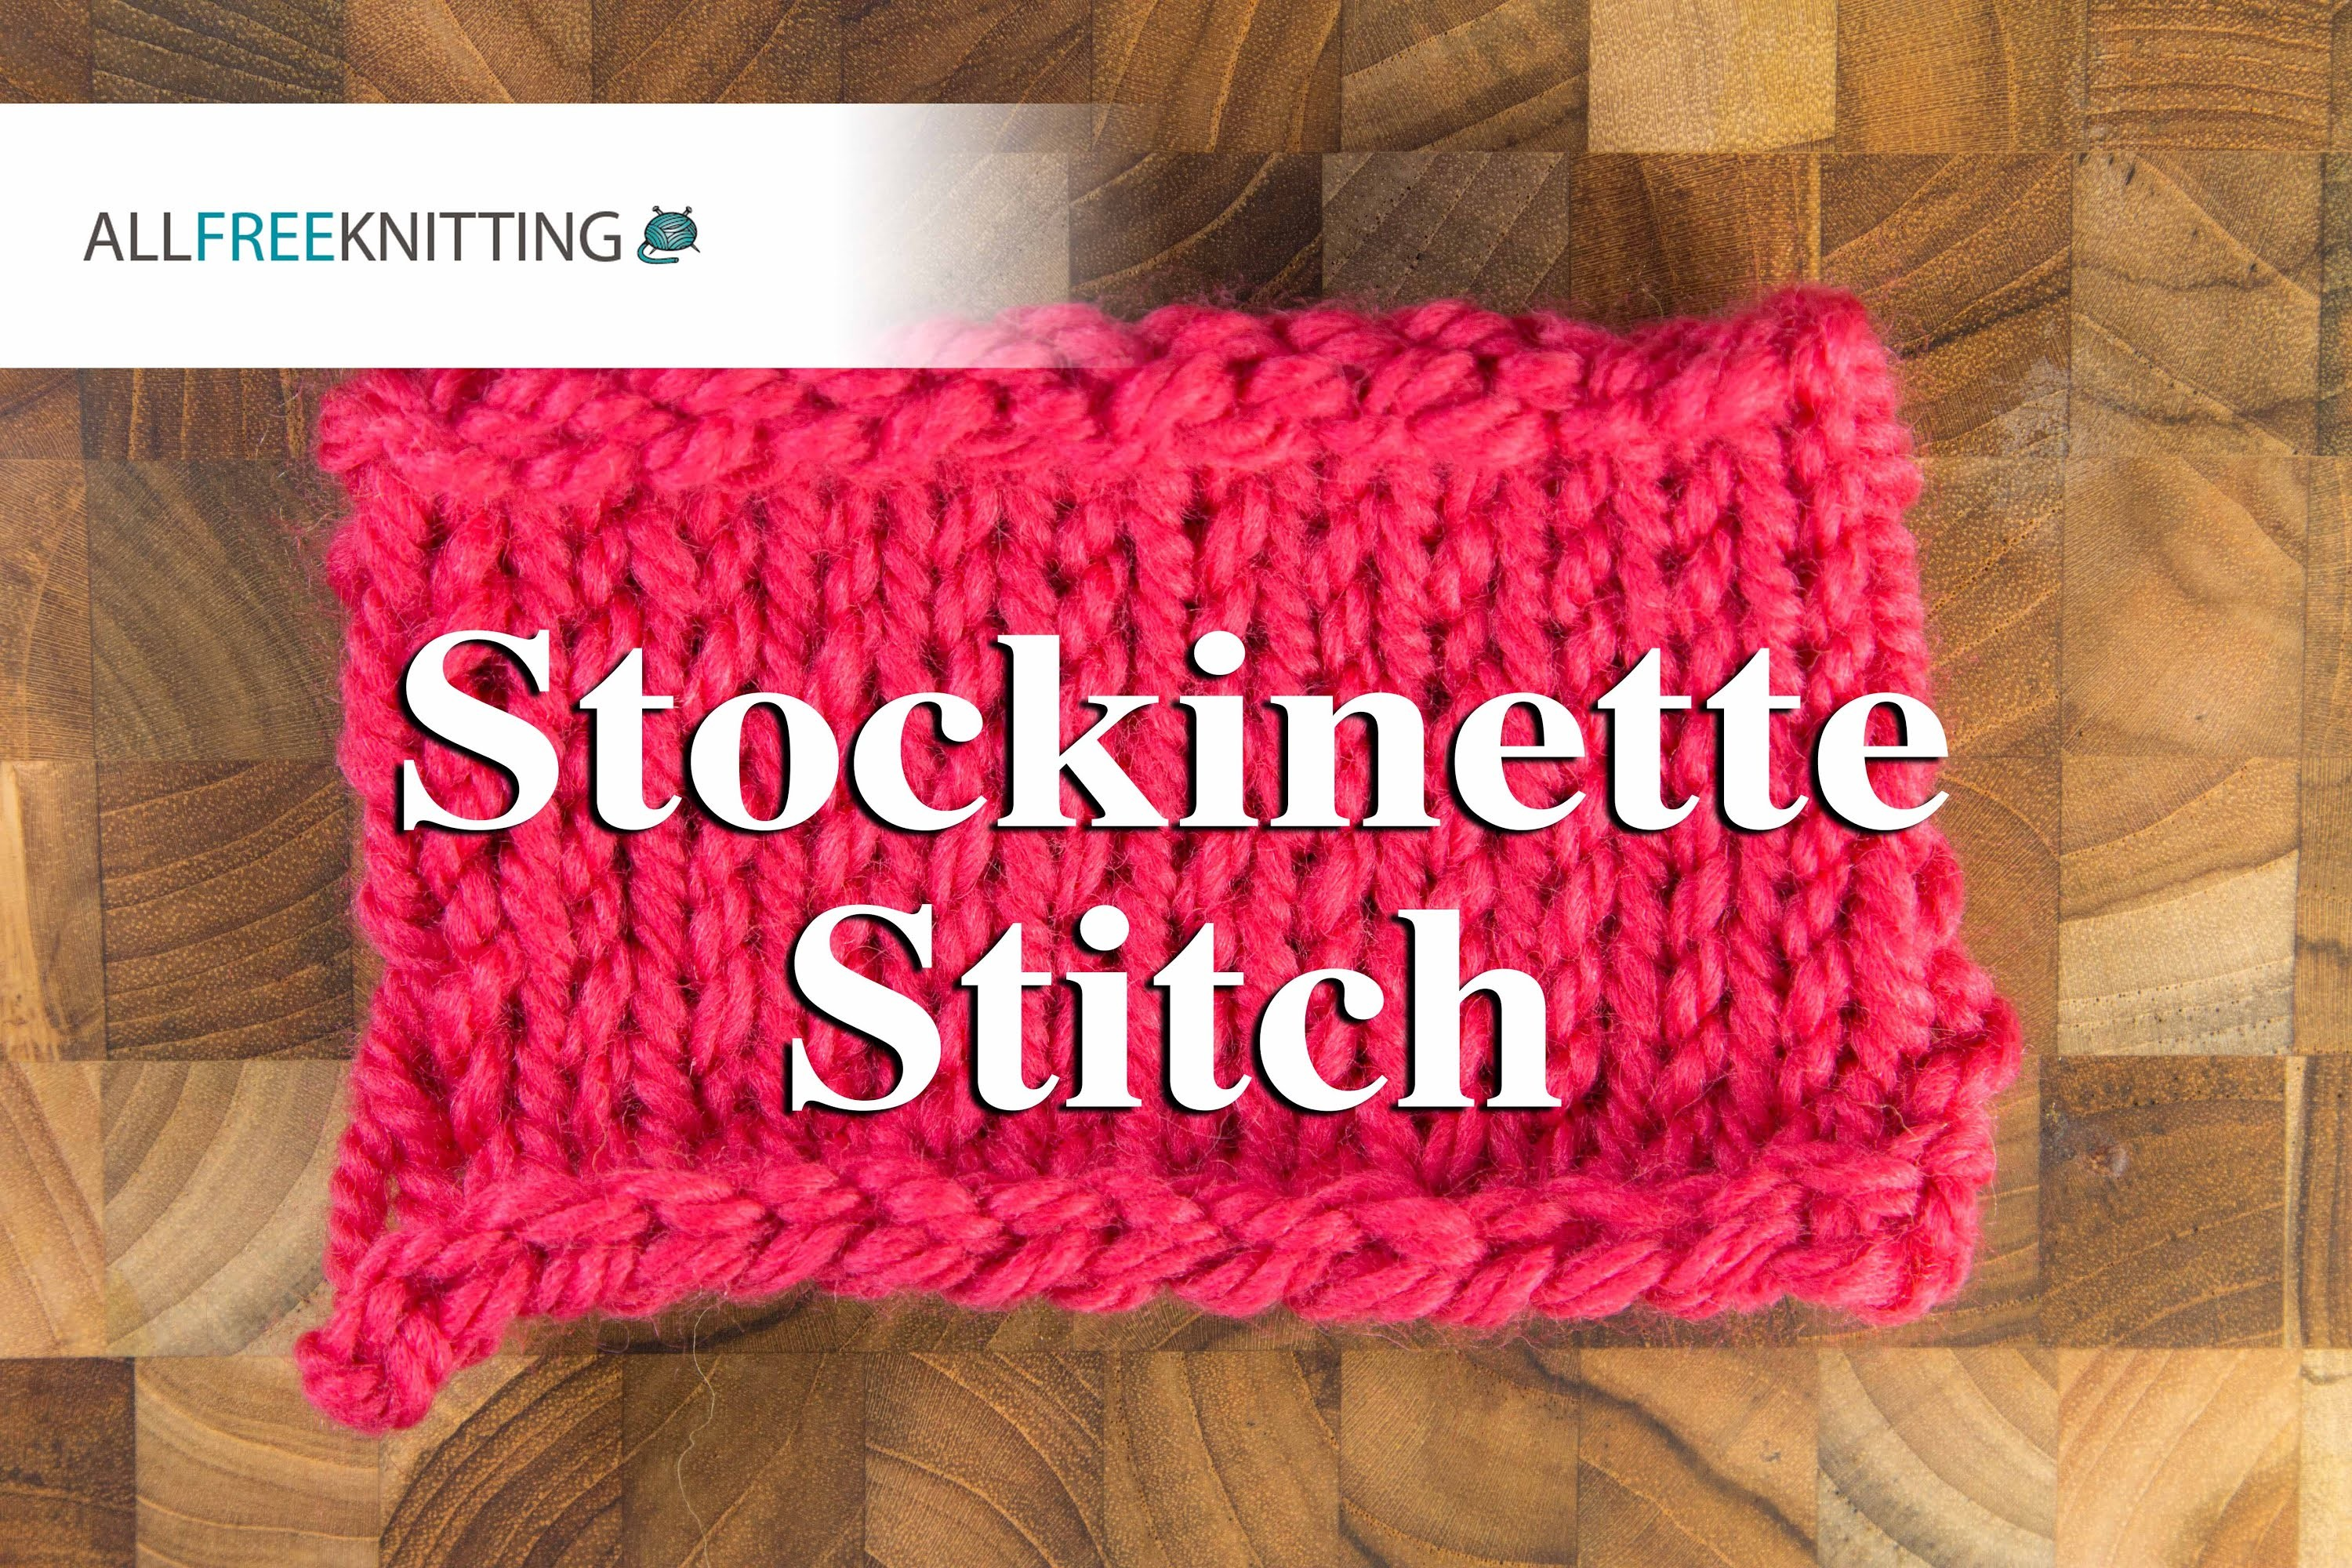 How to: Stockinette